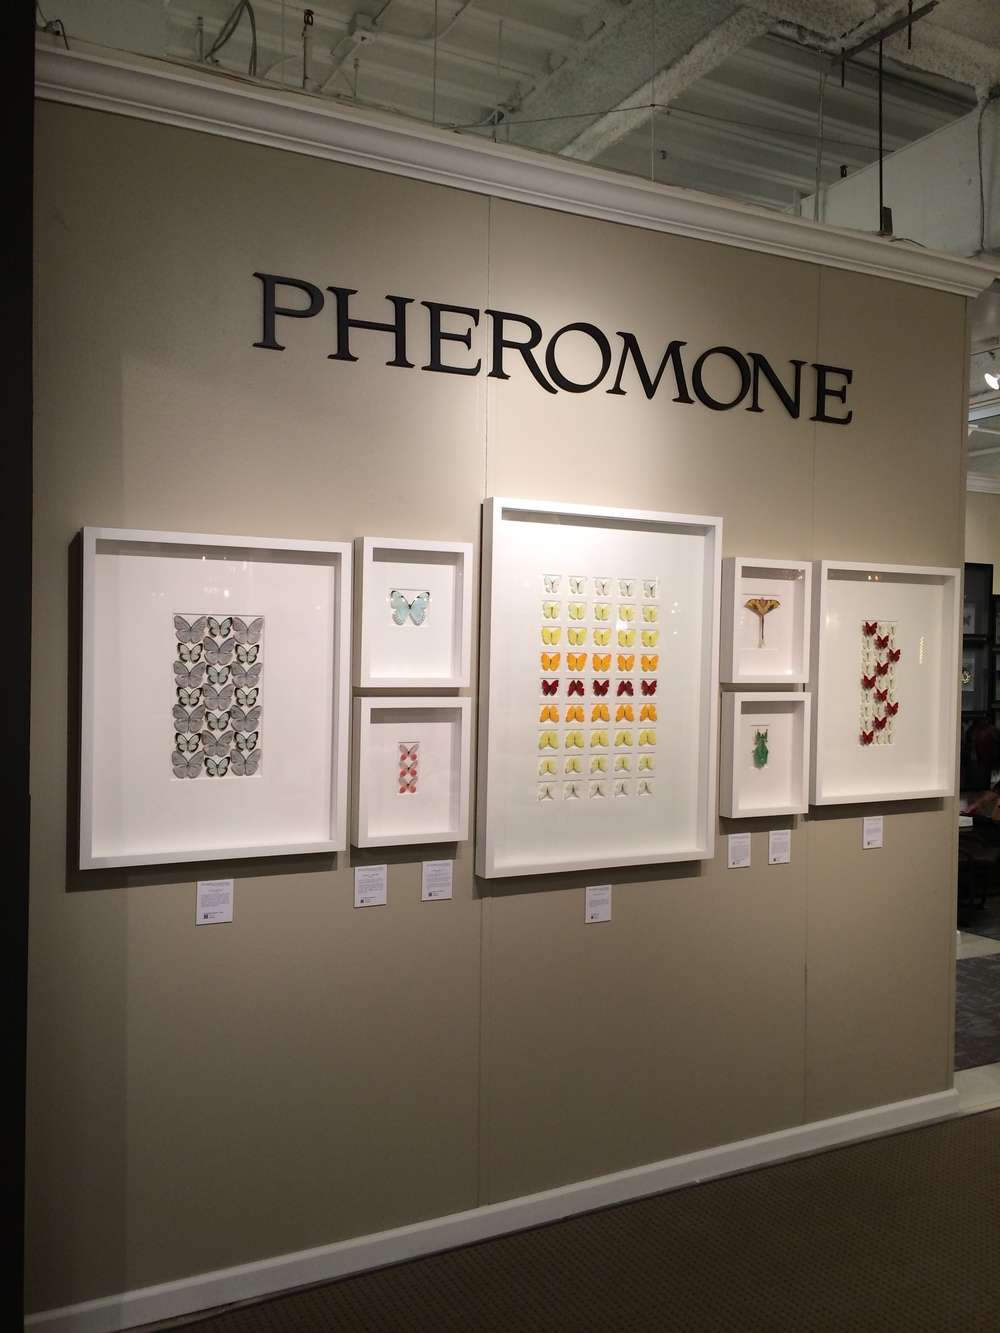 On to one of the big exhibit halls! I love the art work at Pheromone. They have agreements with zoos to acquire their insects, birds, lizards etc. that have passed away, and they use them in beautiful collages. I love that the animals' beauty lives on for a while longer.